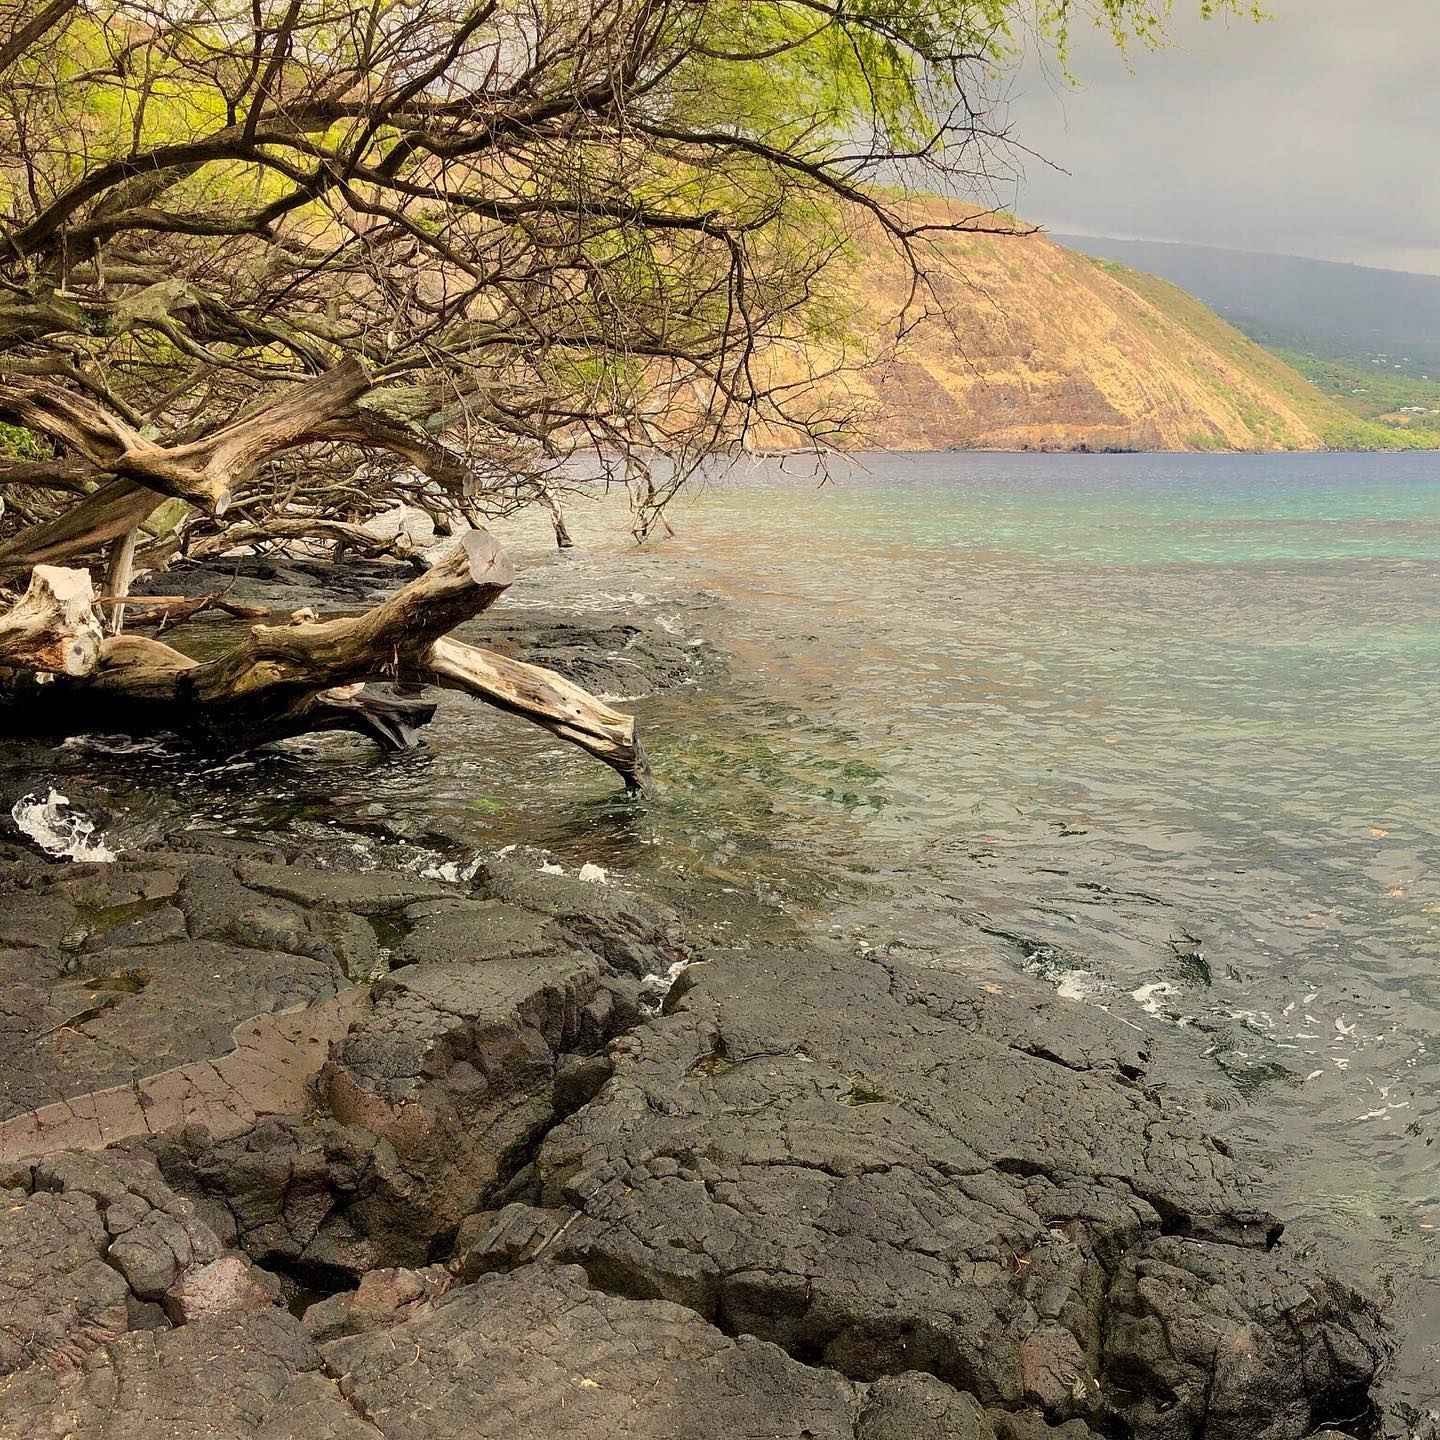 Kealakekua Bay by Cook Monument